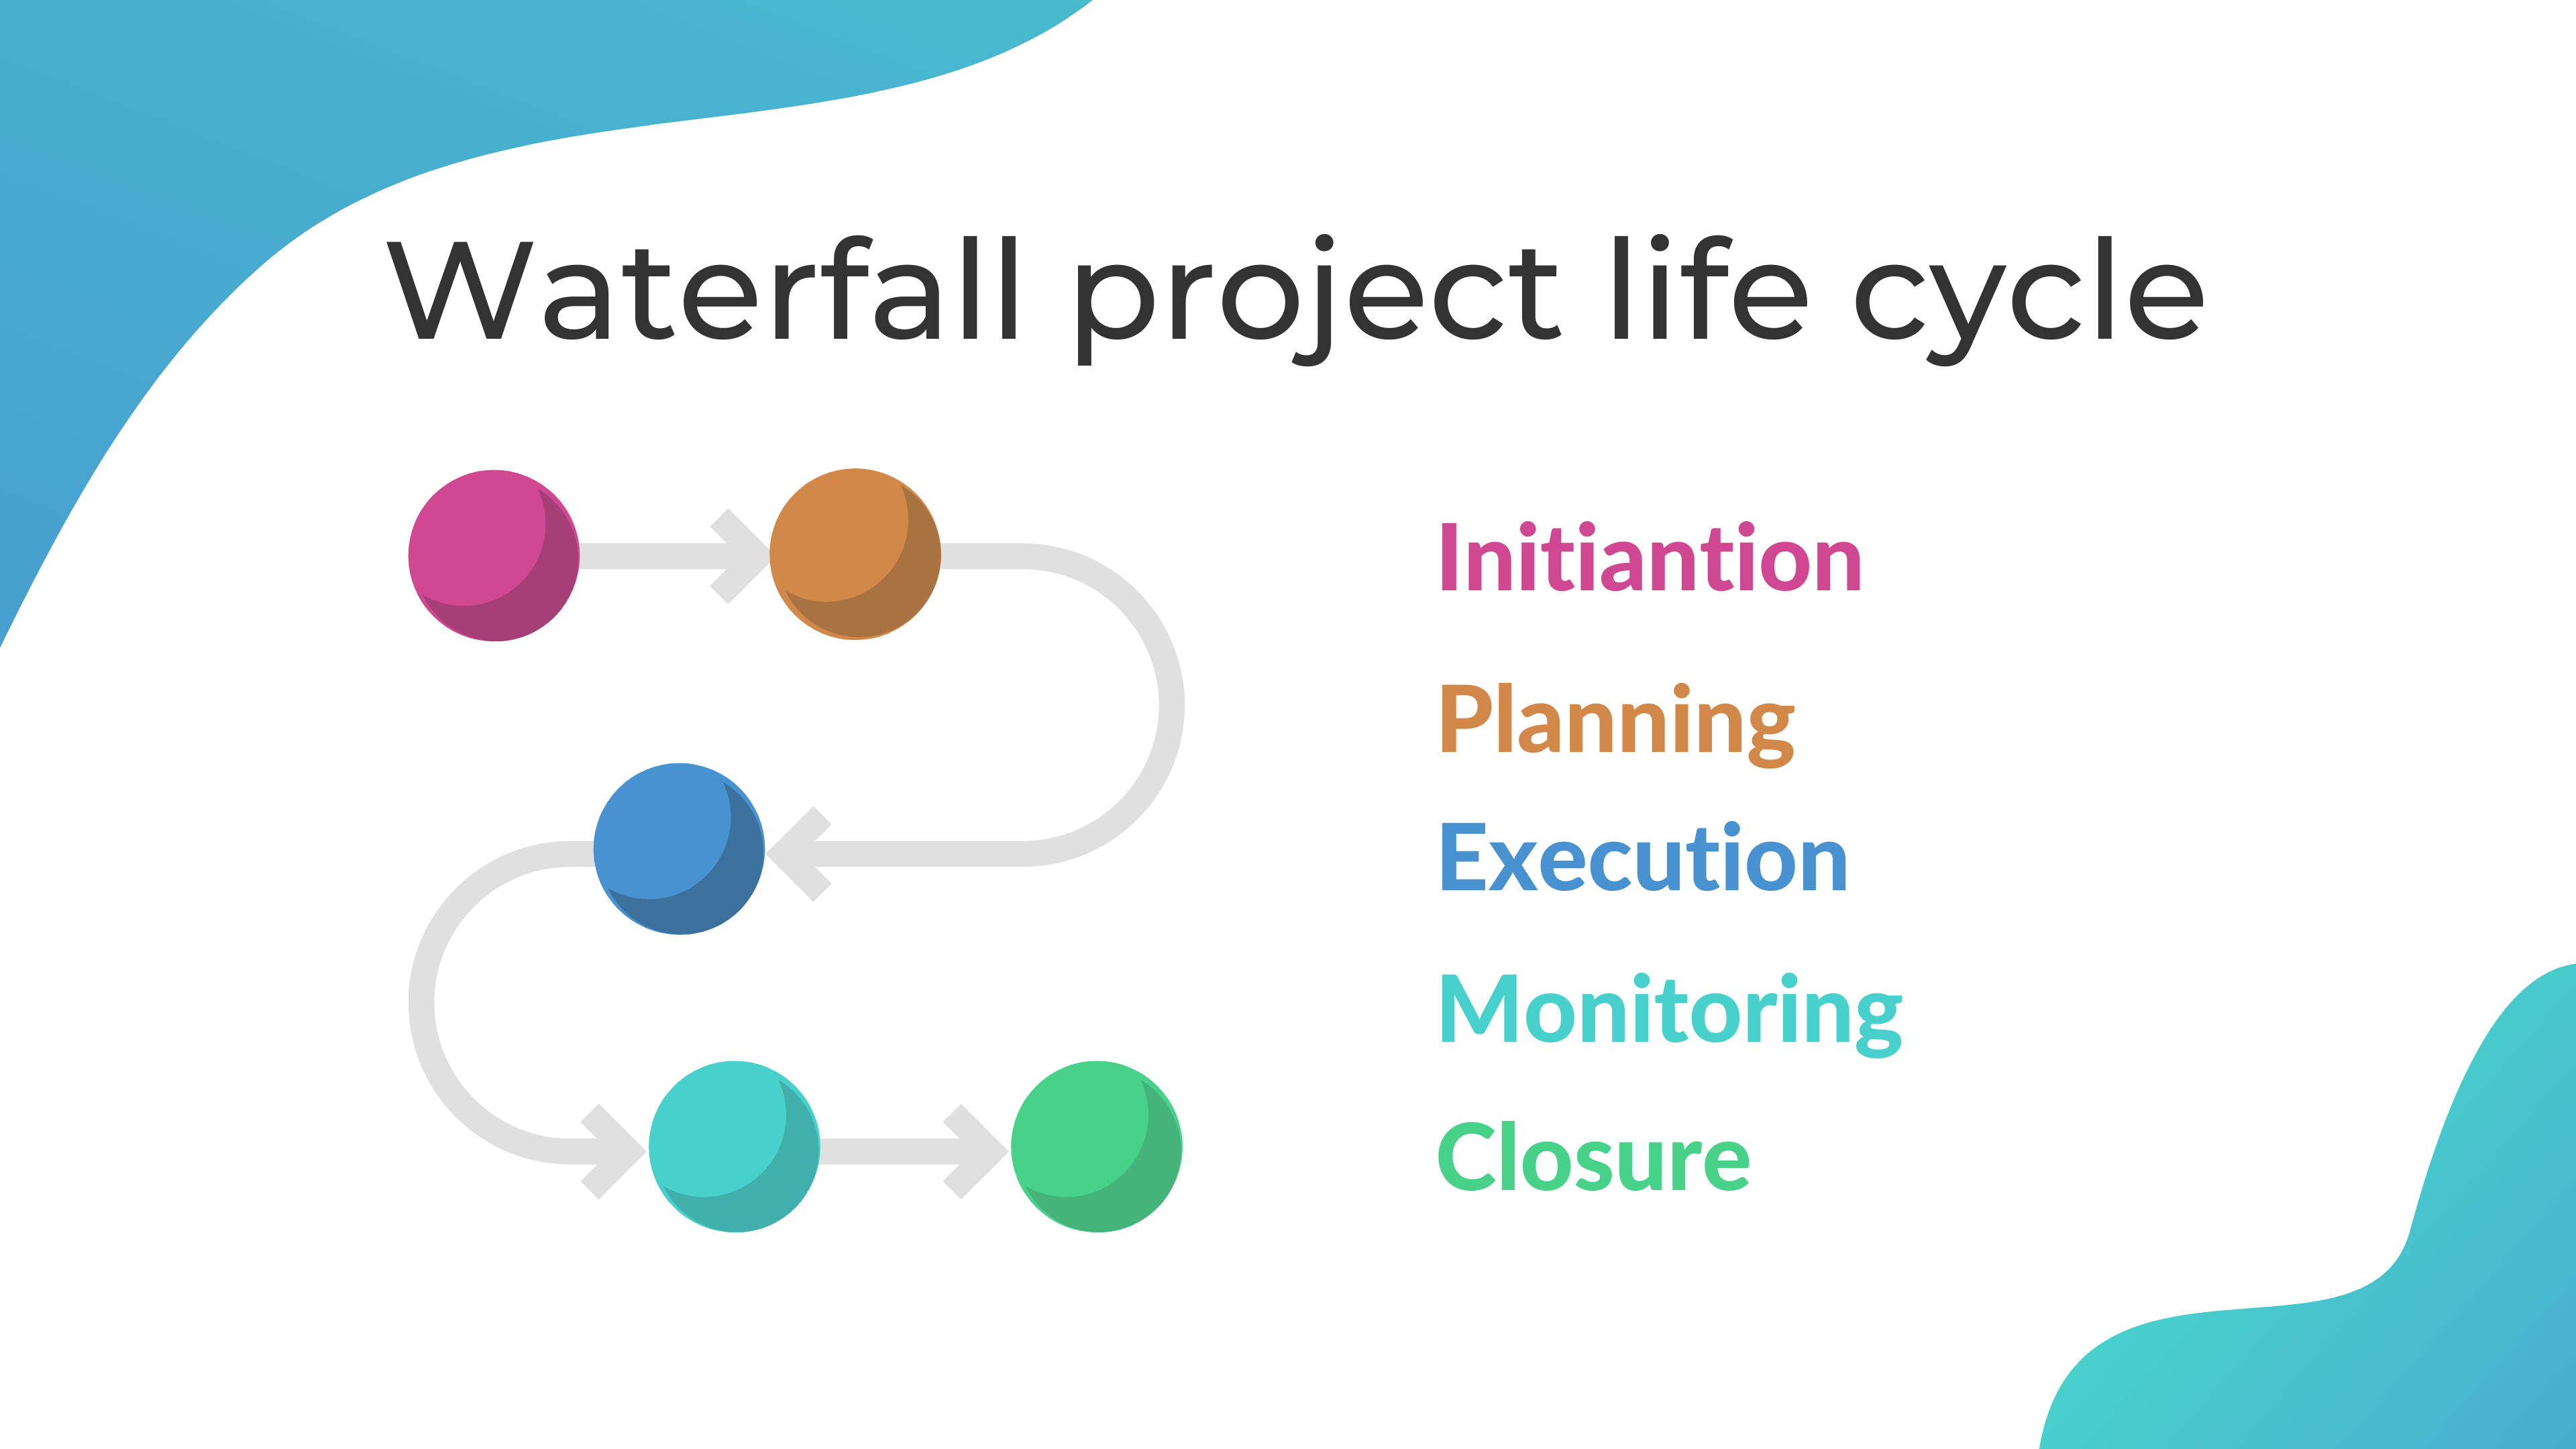 What are phases of the waterfall project life cycle?